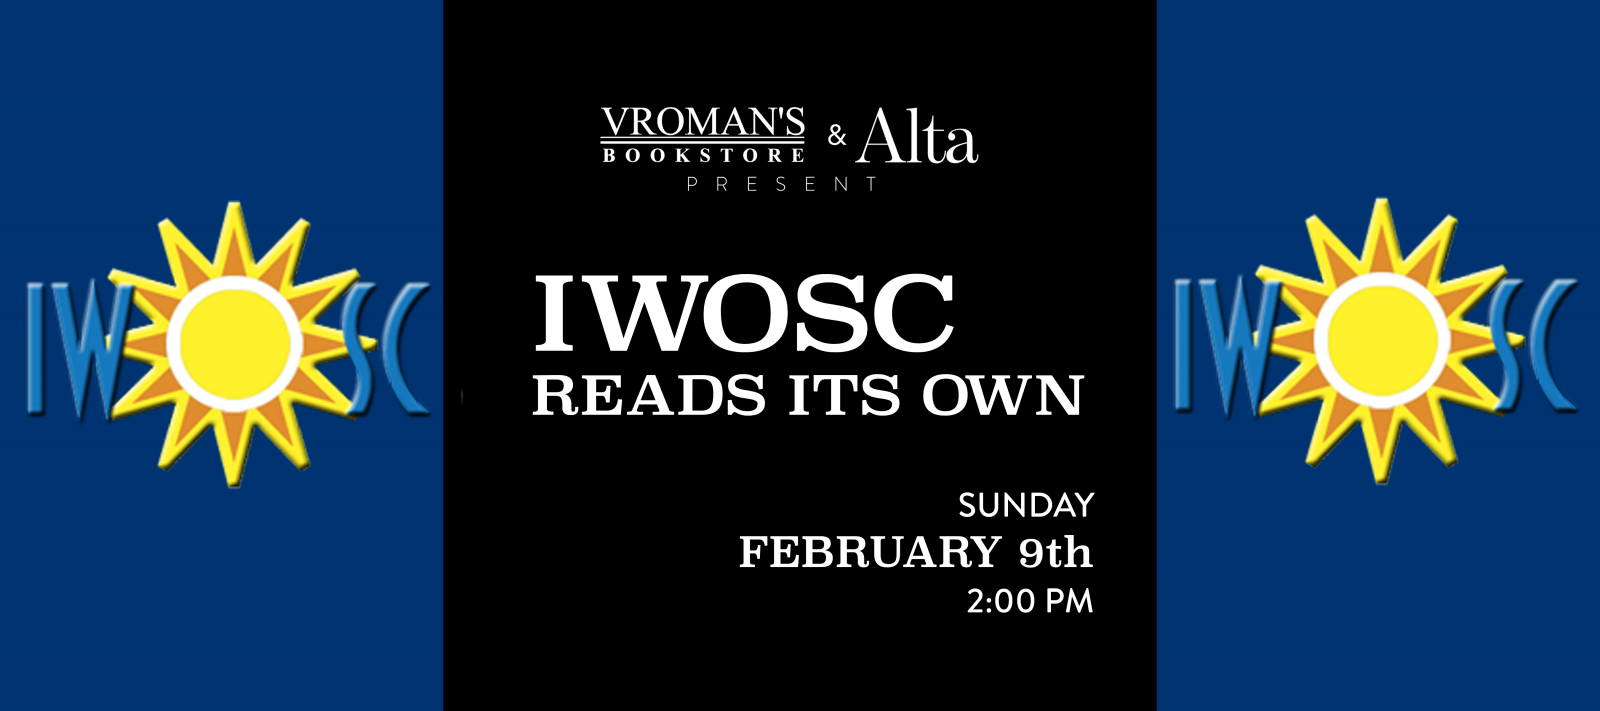 IWOSC Reads Its Own on Sunday, February 9, at 3pm